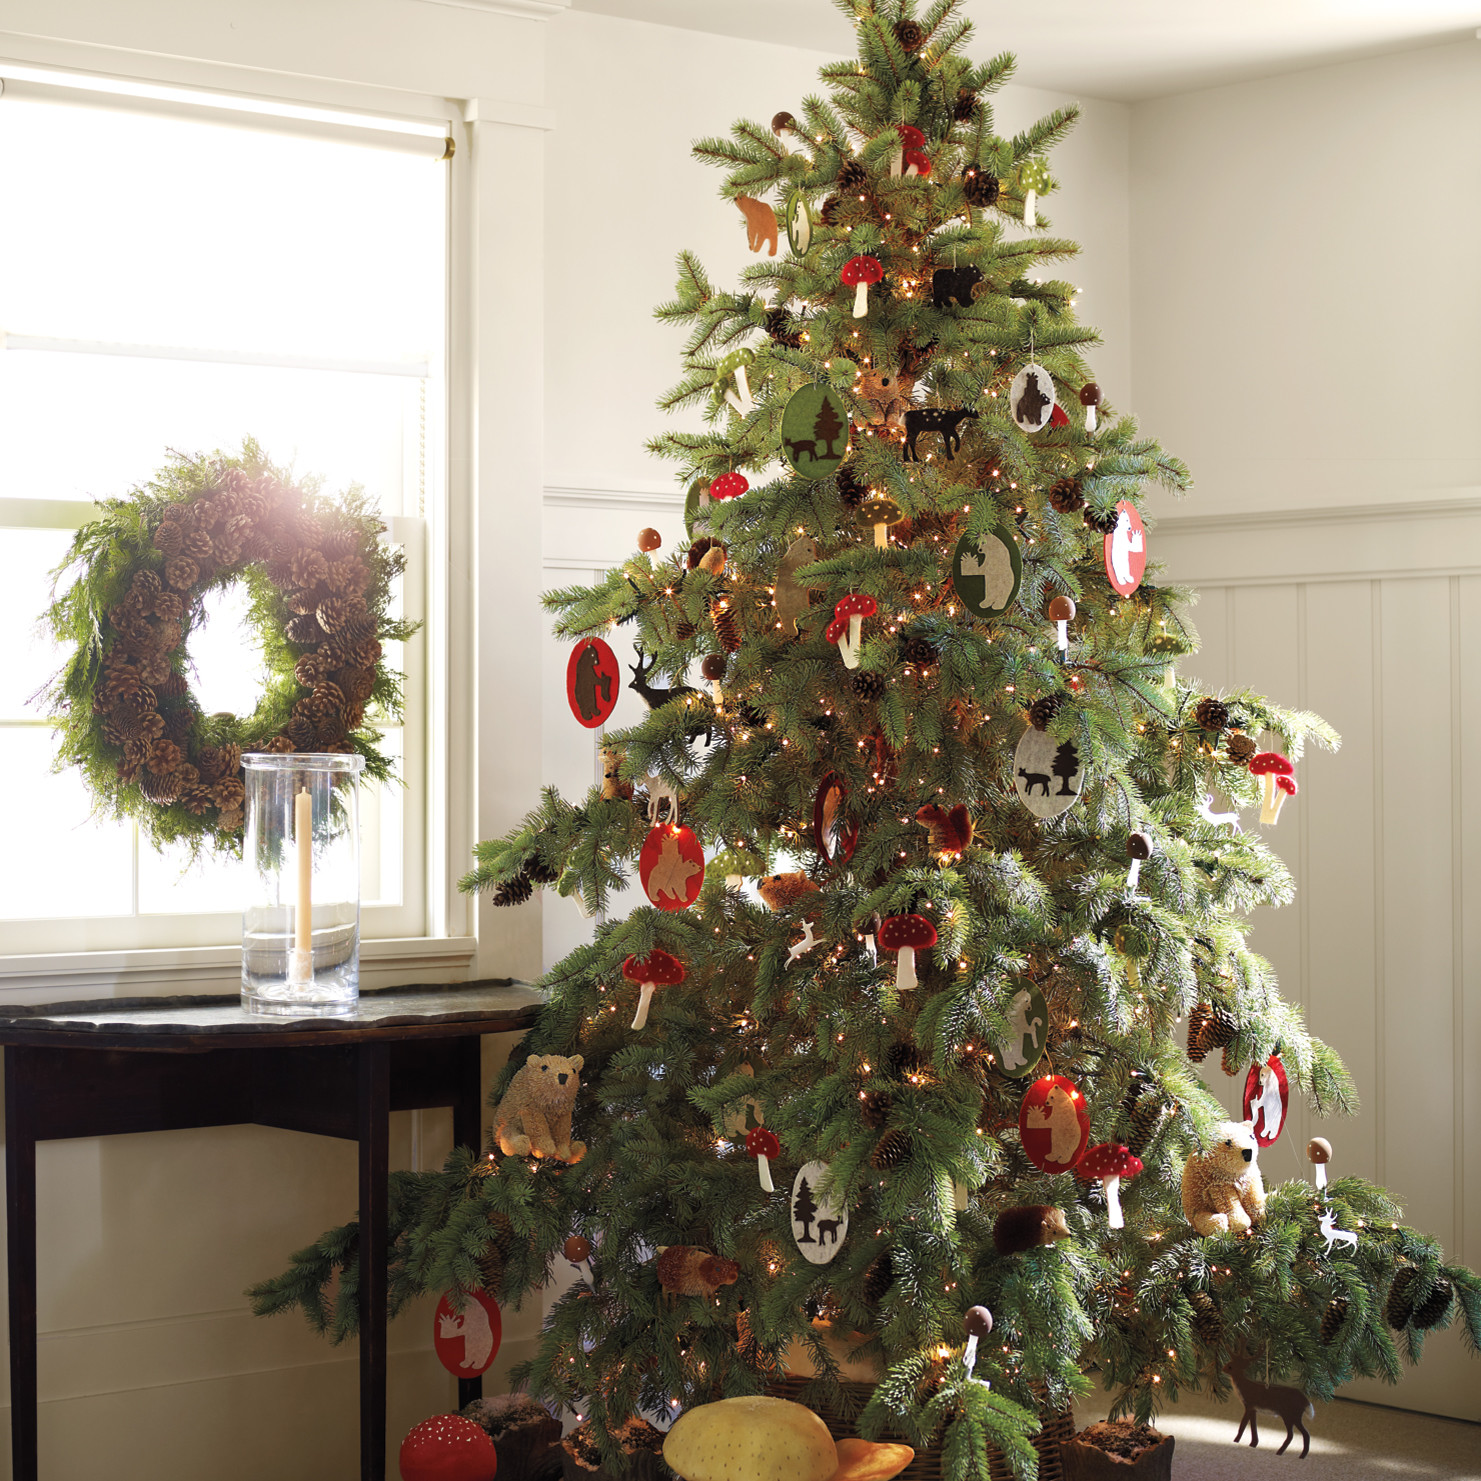 & 5 Surprising Facts You Never Knew About Christmas | Martha Stewart